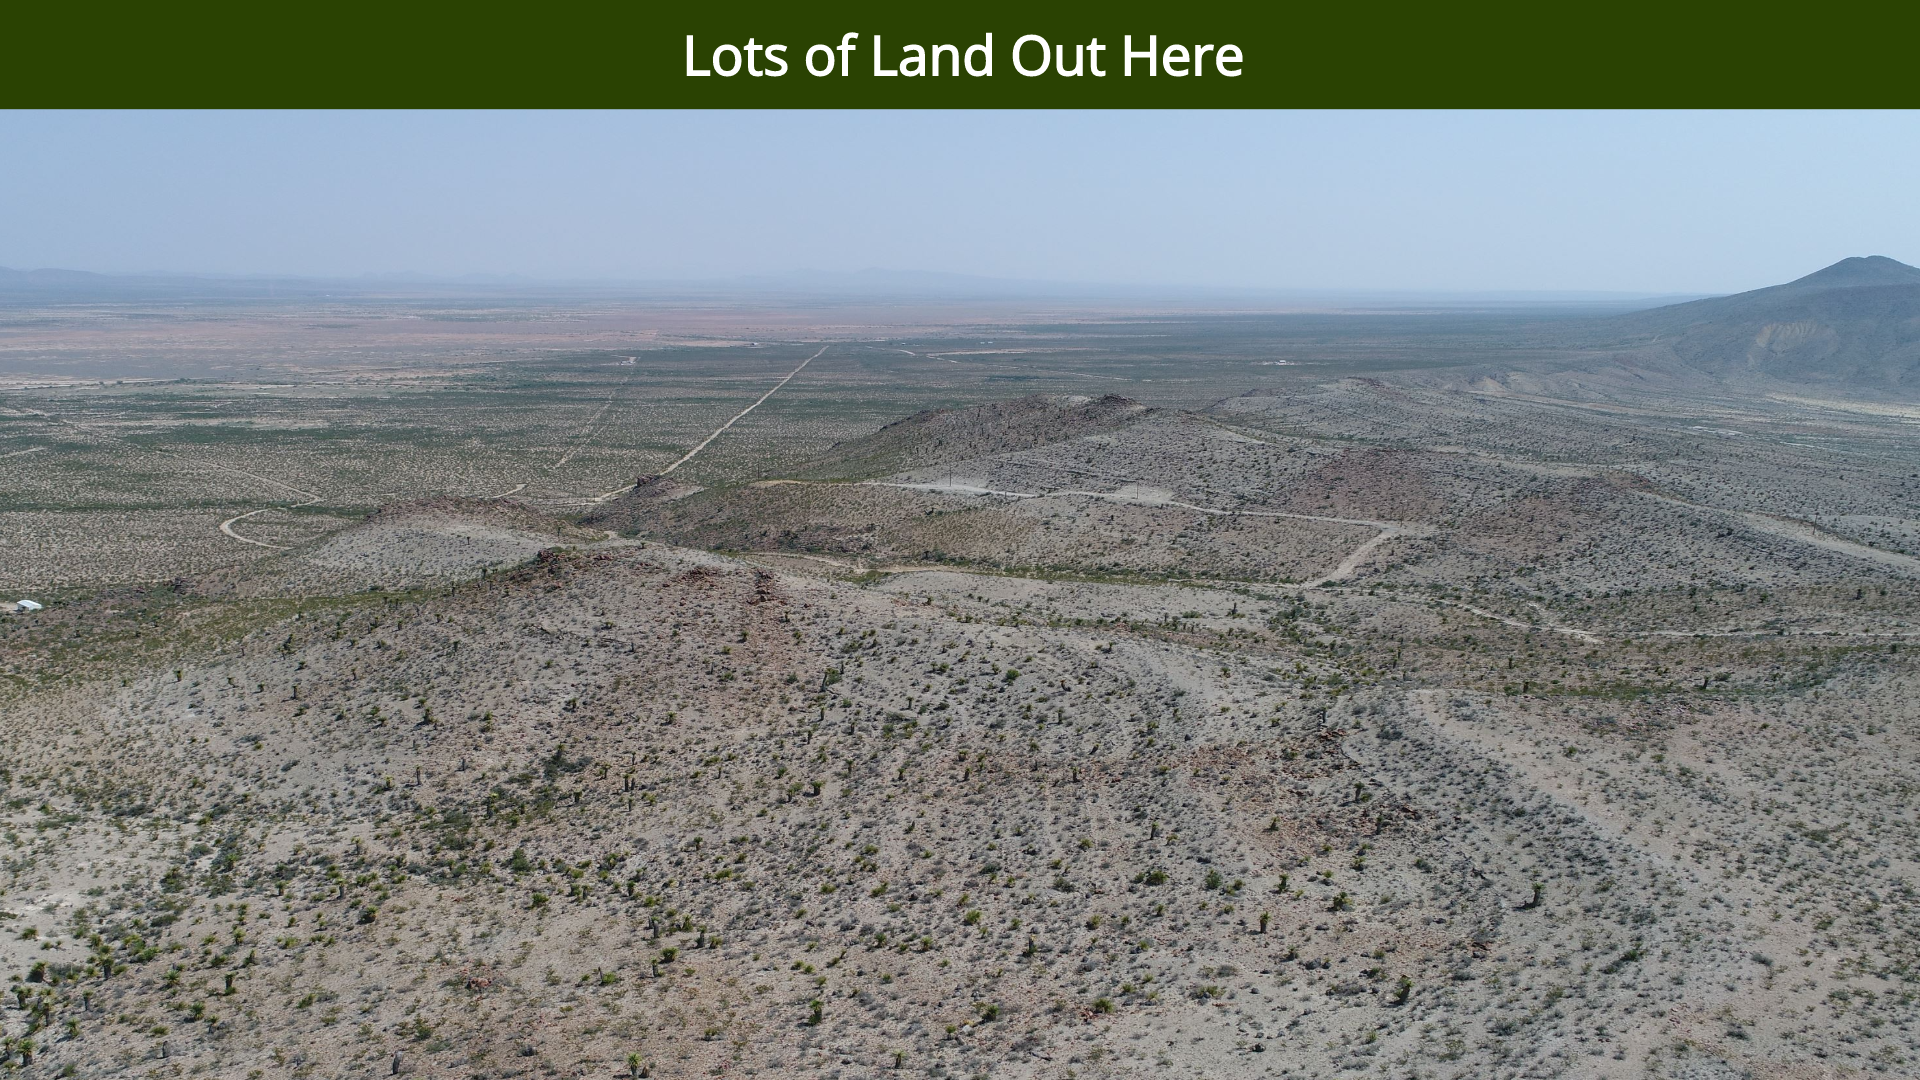 Lots of Land Out Here